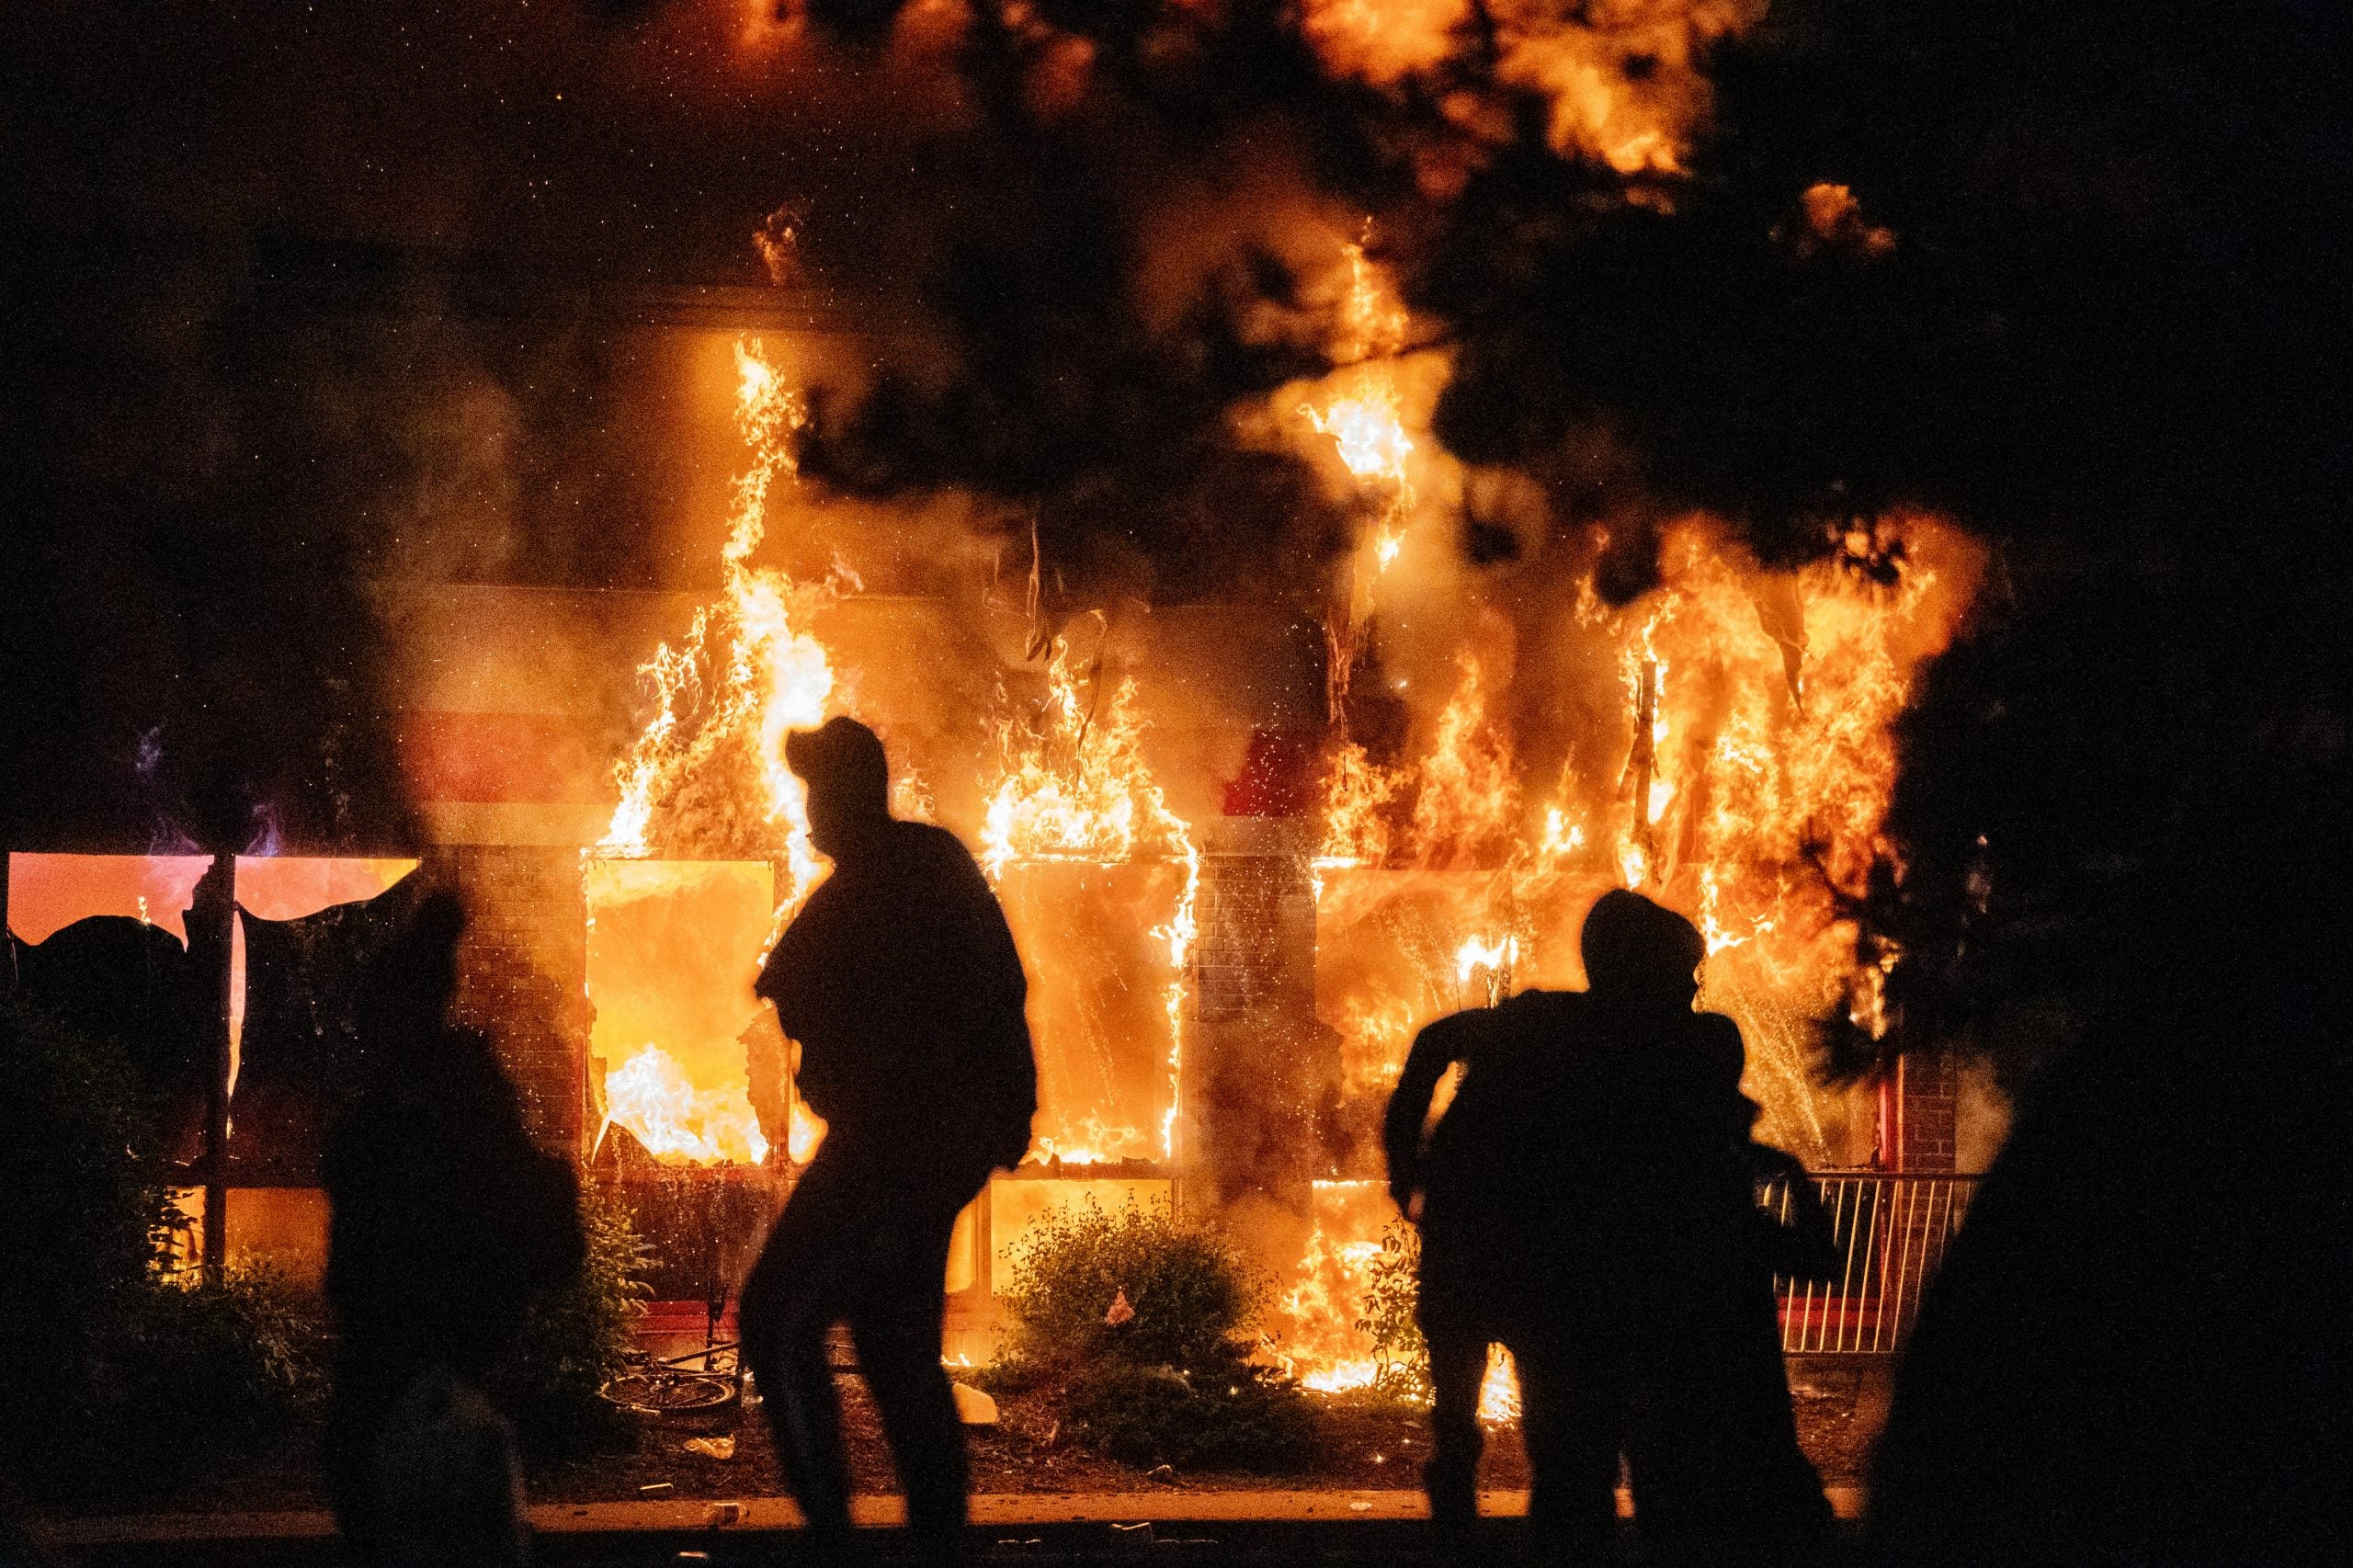 Minneapolis, MN May 27: AutoZone burned as protesters continued to gather outside of the Third Precinct. Protester and police clashed violently in South Minneapolis as looters attacked business on Lake Street on Thursday, May 28, 2020 in Minneapolis. The protests were sparked by the death of George Floyd at the hands of a Minneapolis Police officer Monday.(Photo by Mark Vancleave/Star Tribune via Getty Images)